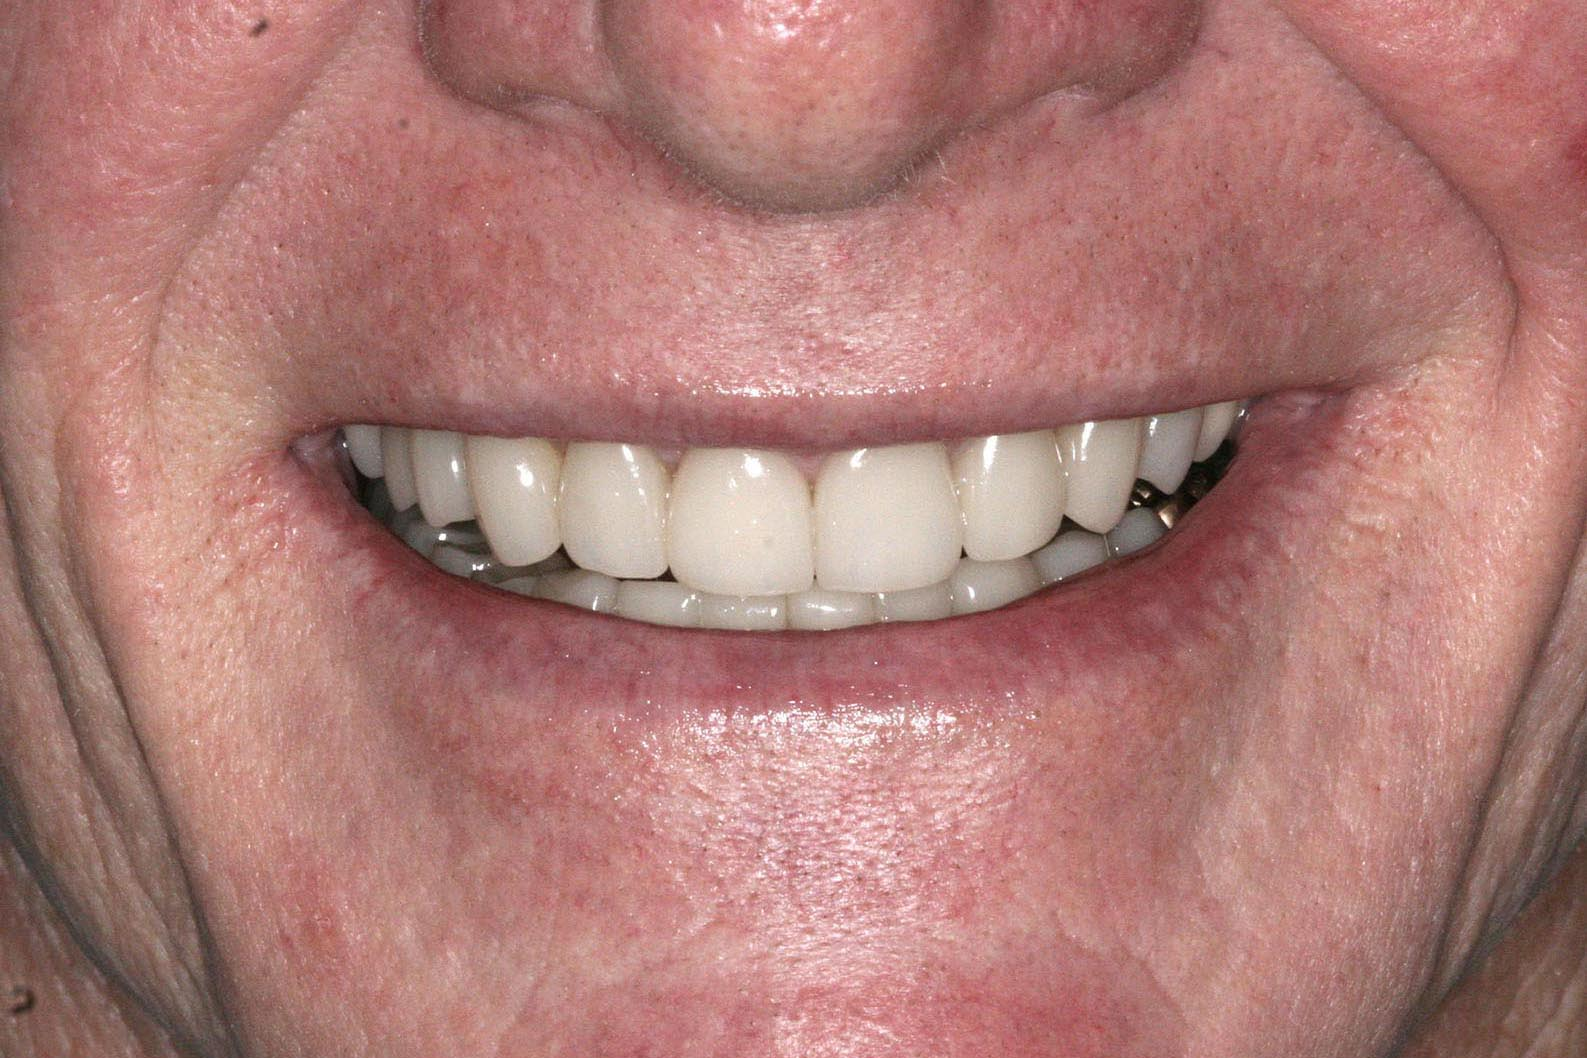 After adding crowns onlays and veneers